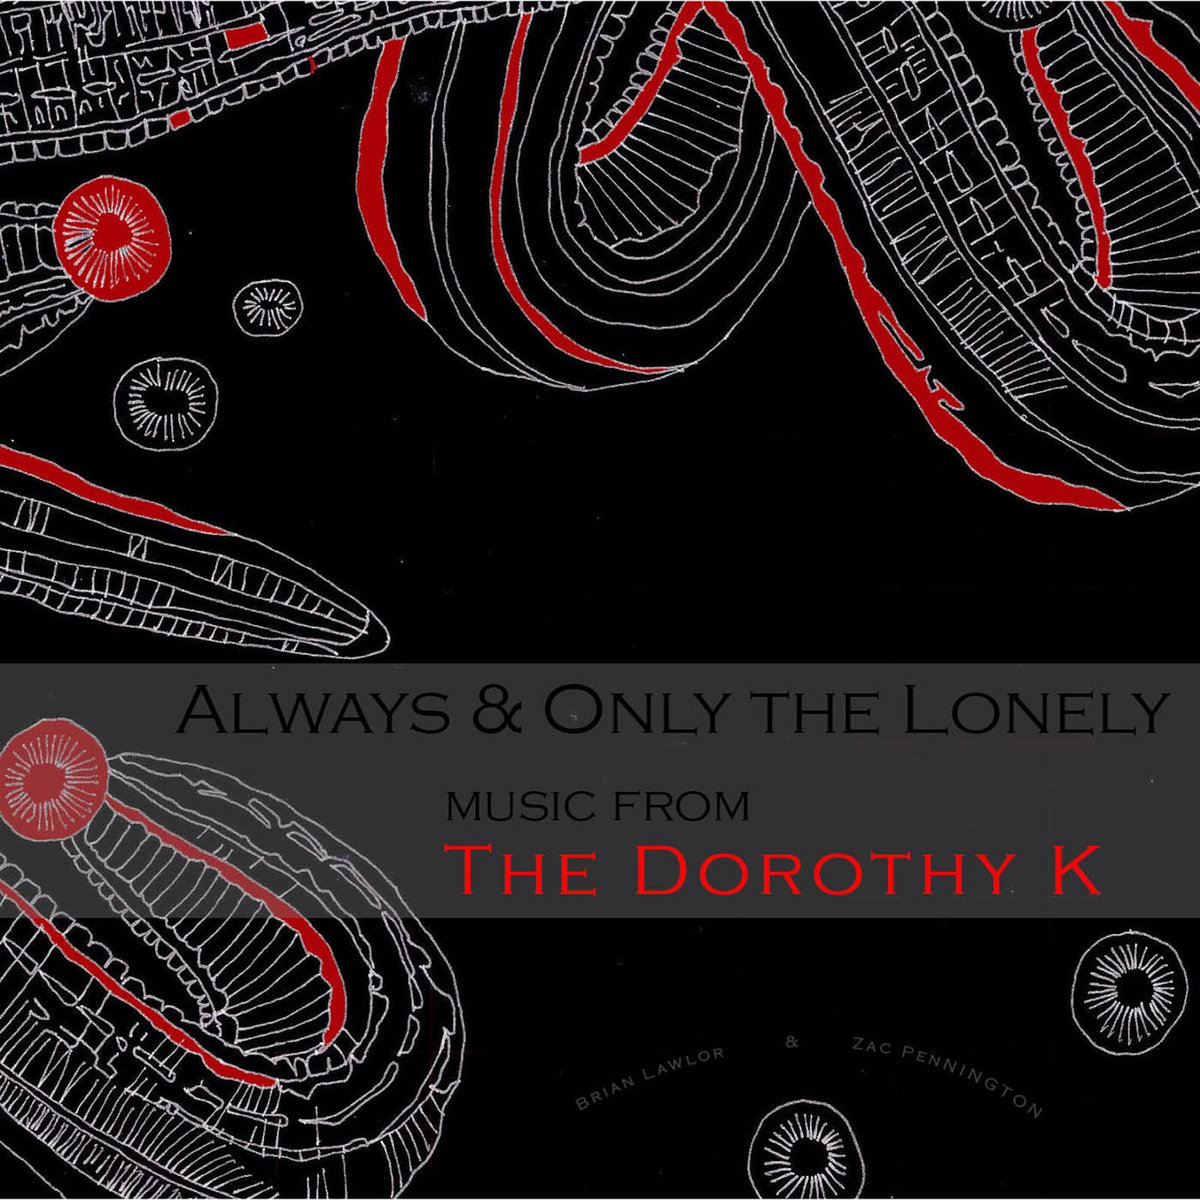 Zac Pennington and Brian Lawlor's Always and Only the Lonely is a Beautiful Examination of Suffering as Art